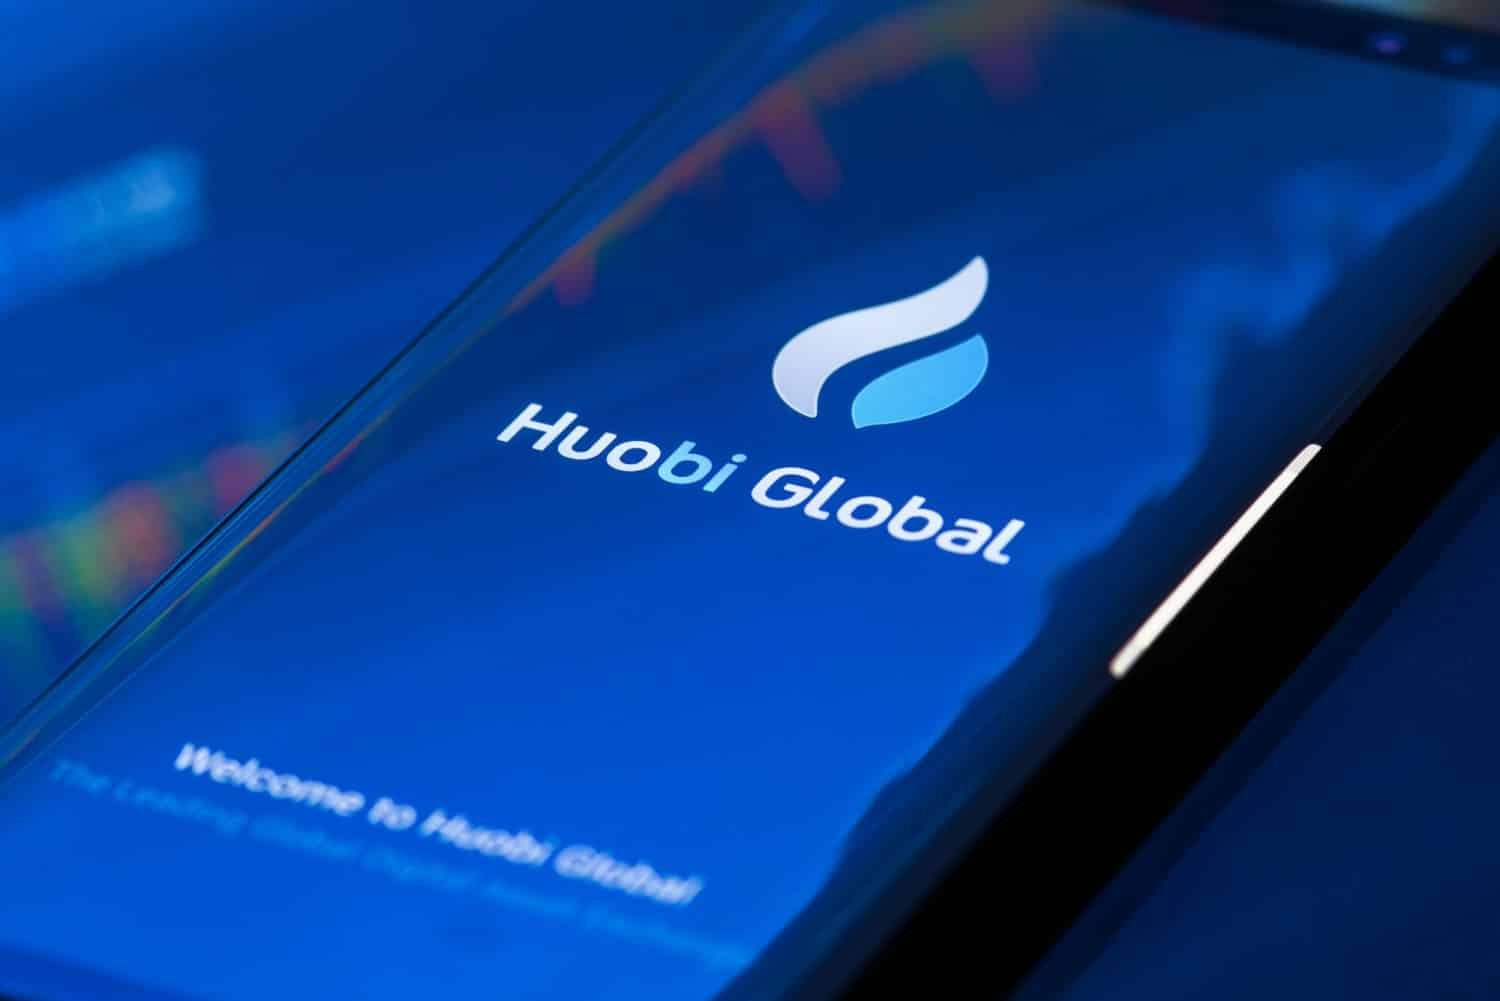 Huobi Cloud Platform Plans